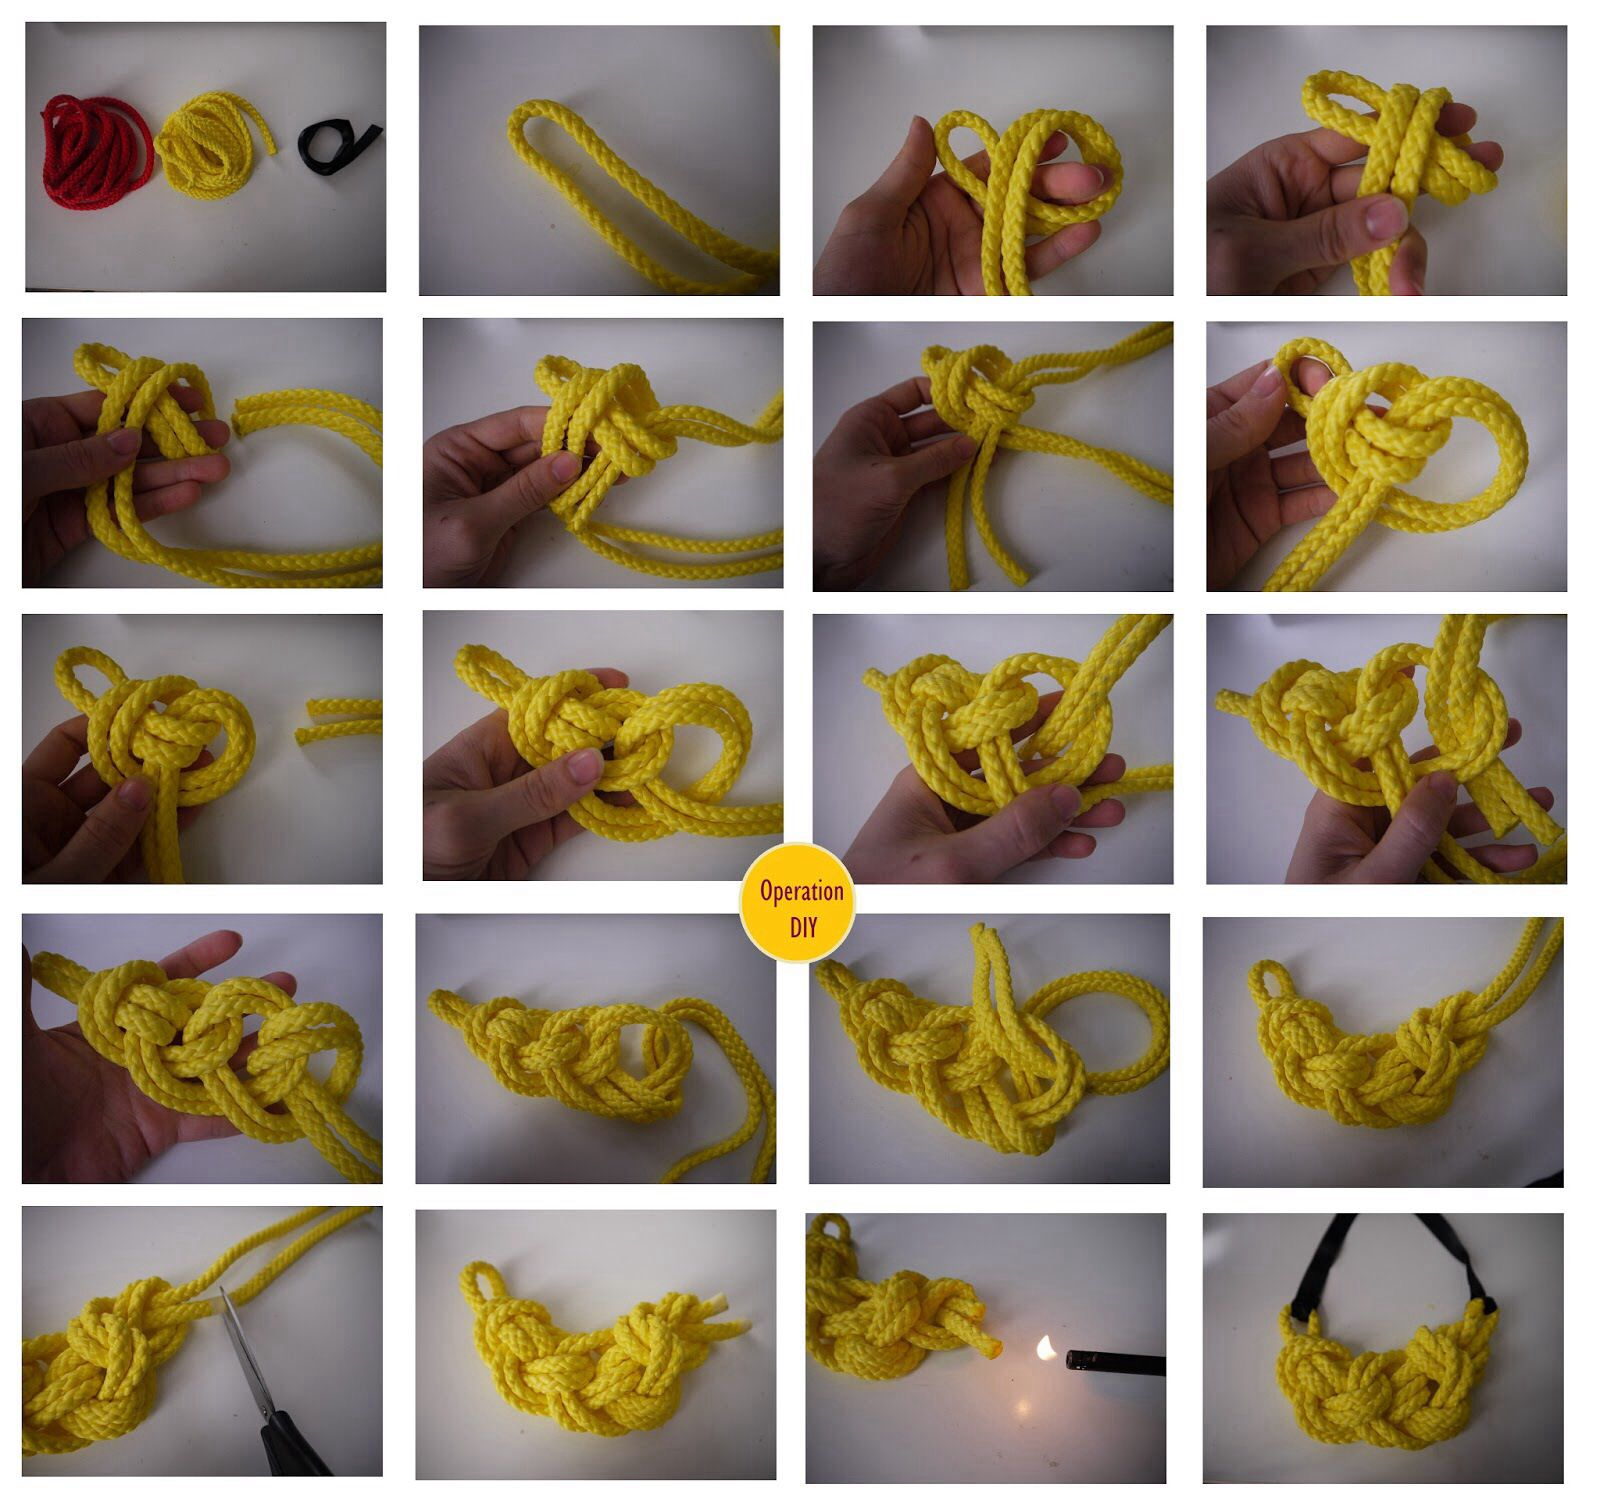 Diy rope necklace tutorials rope knots necklace tutorial and diy rope necklace tutorials solutioingenieria Image collections